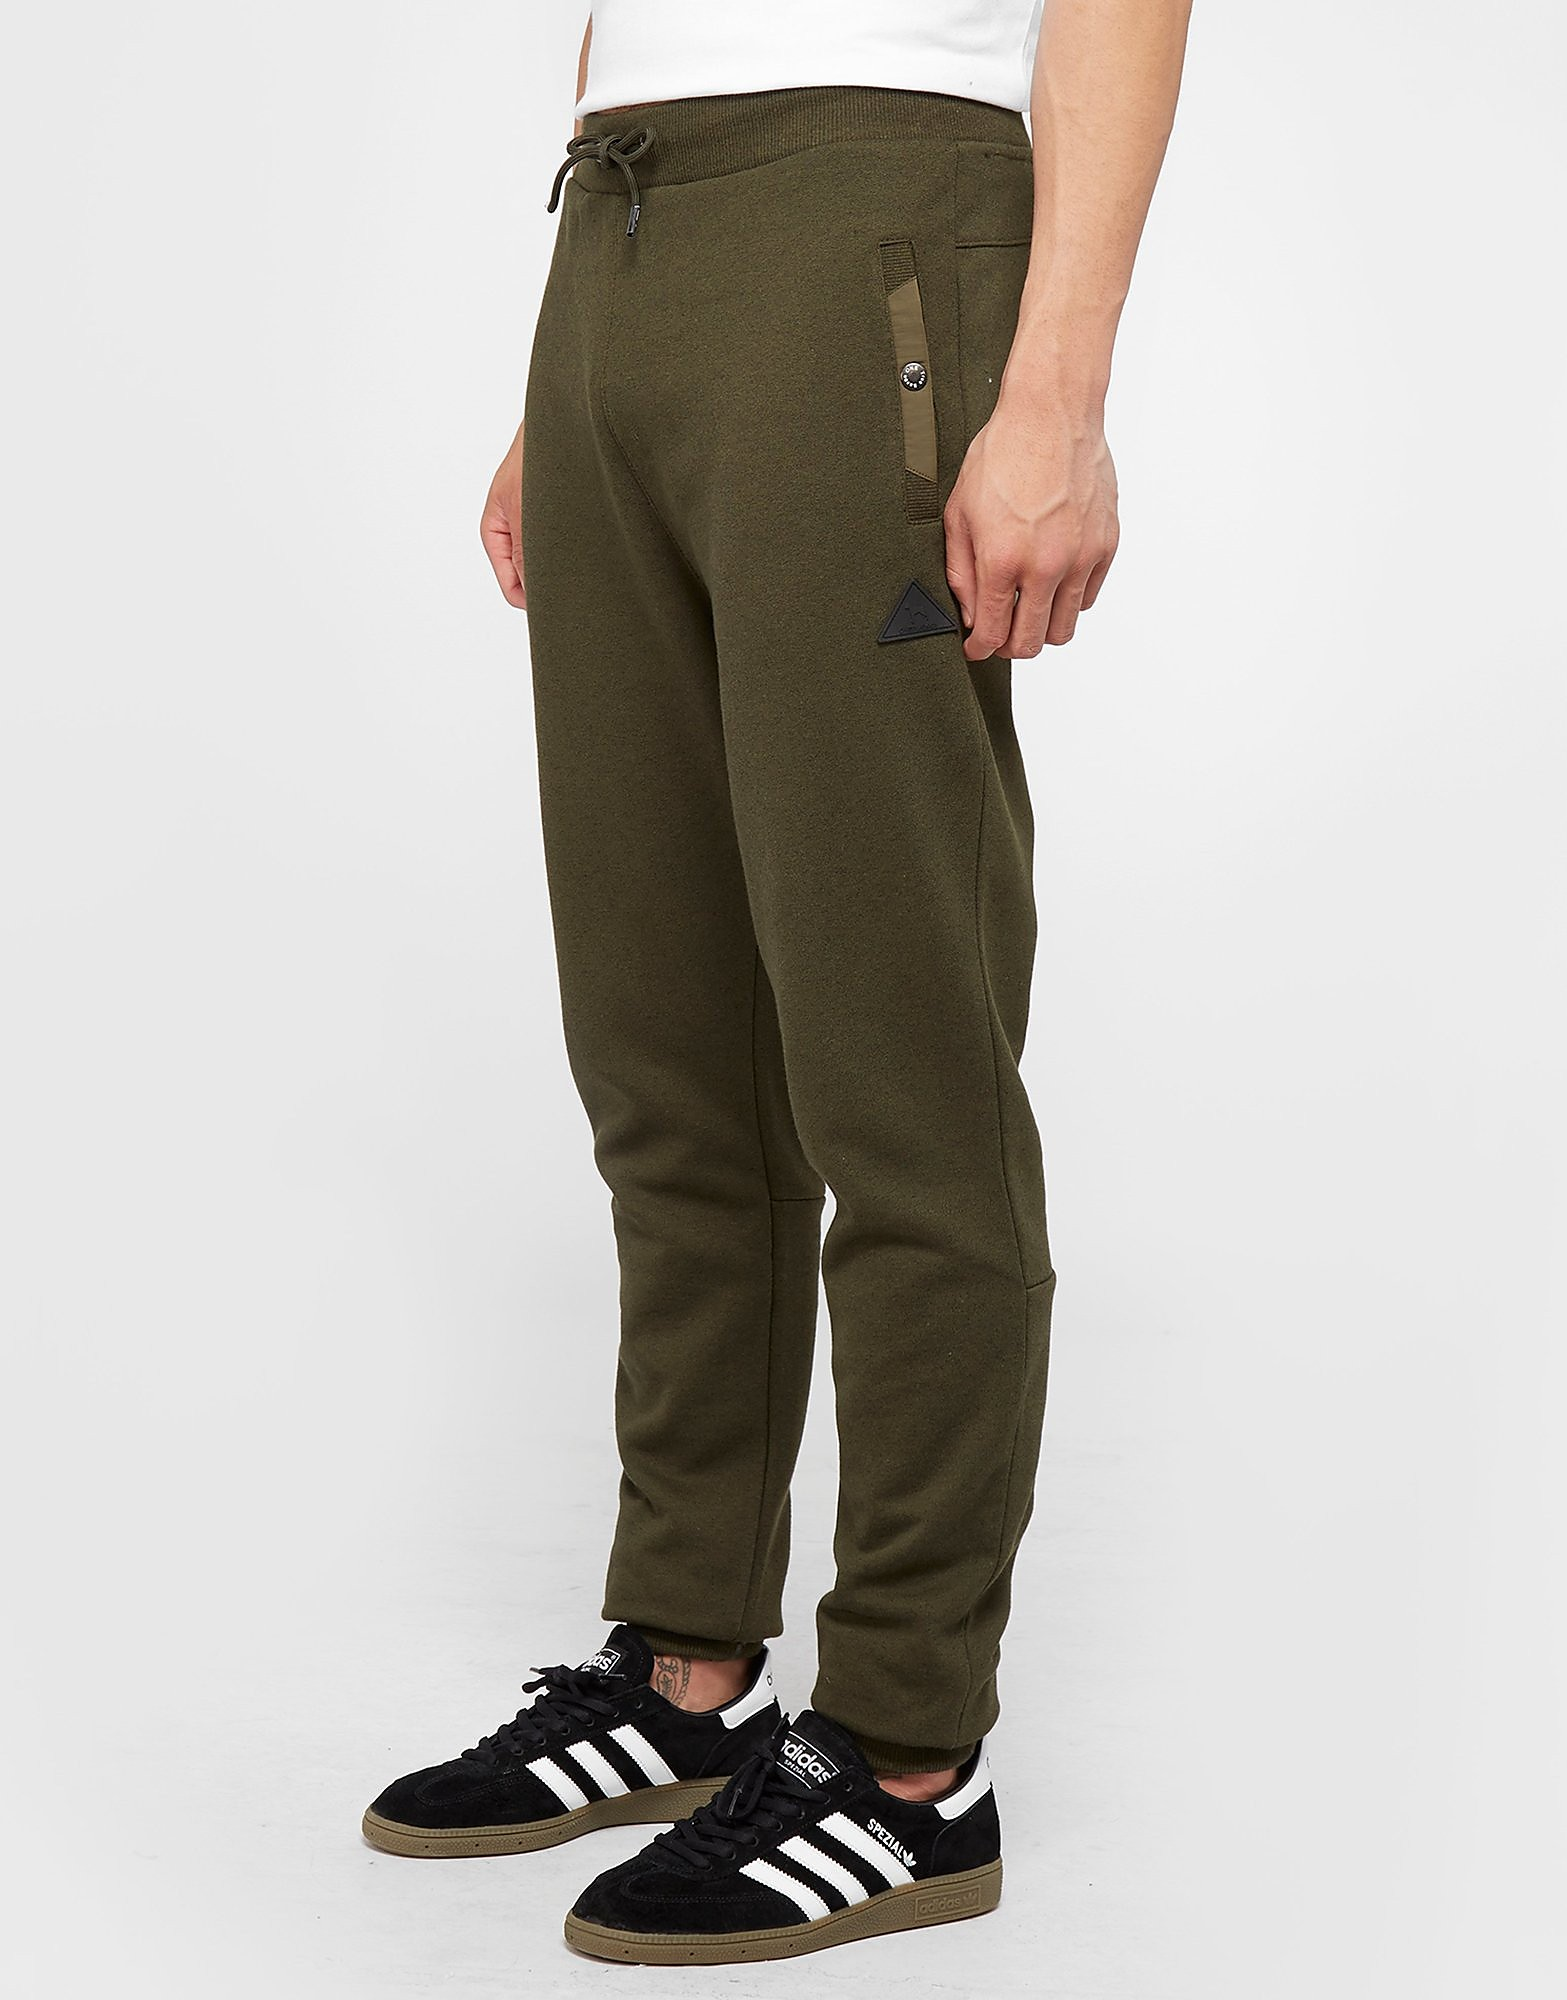 One True Saxon Hewitts Jogger - Exclusive